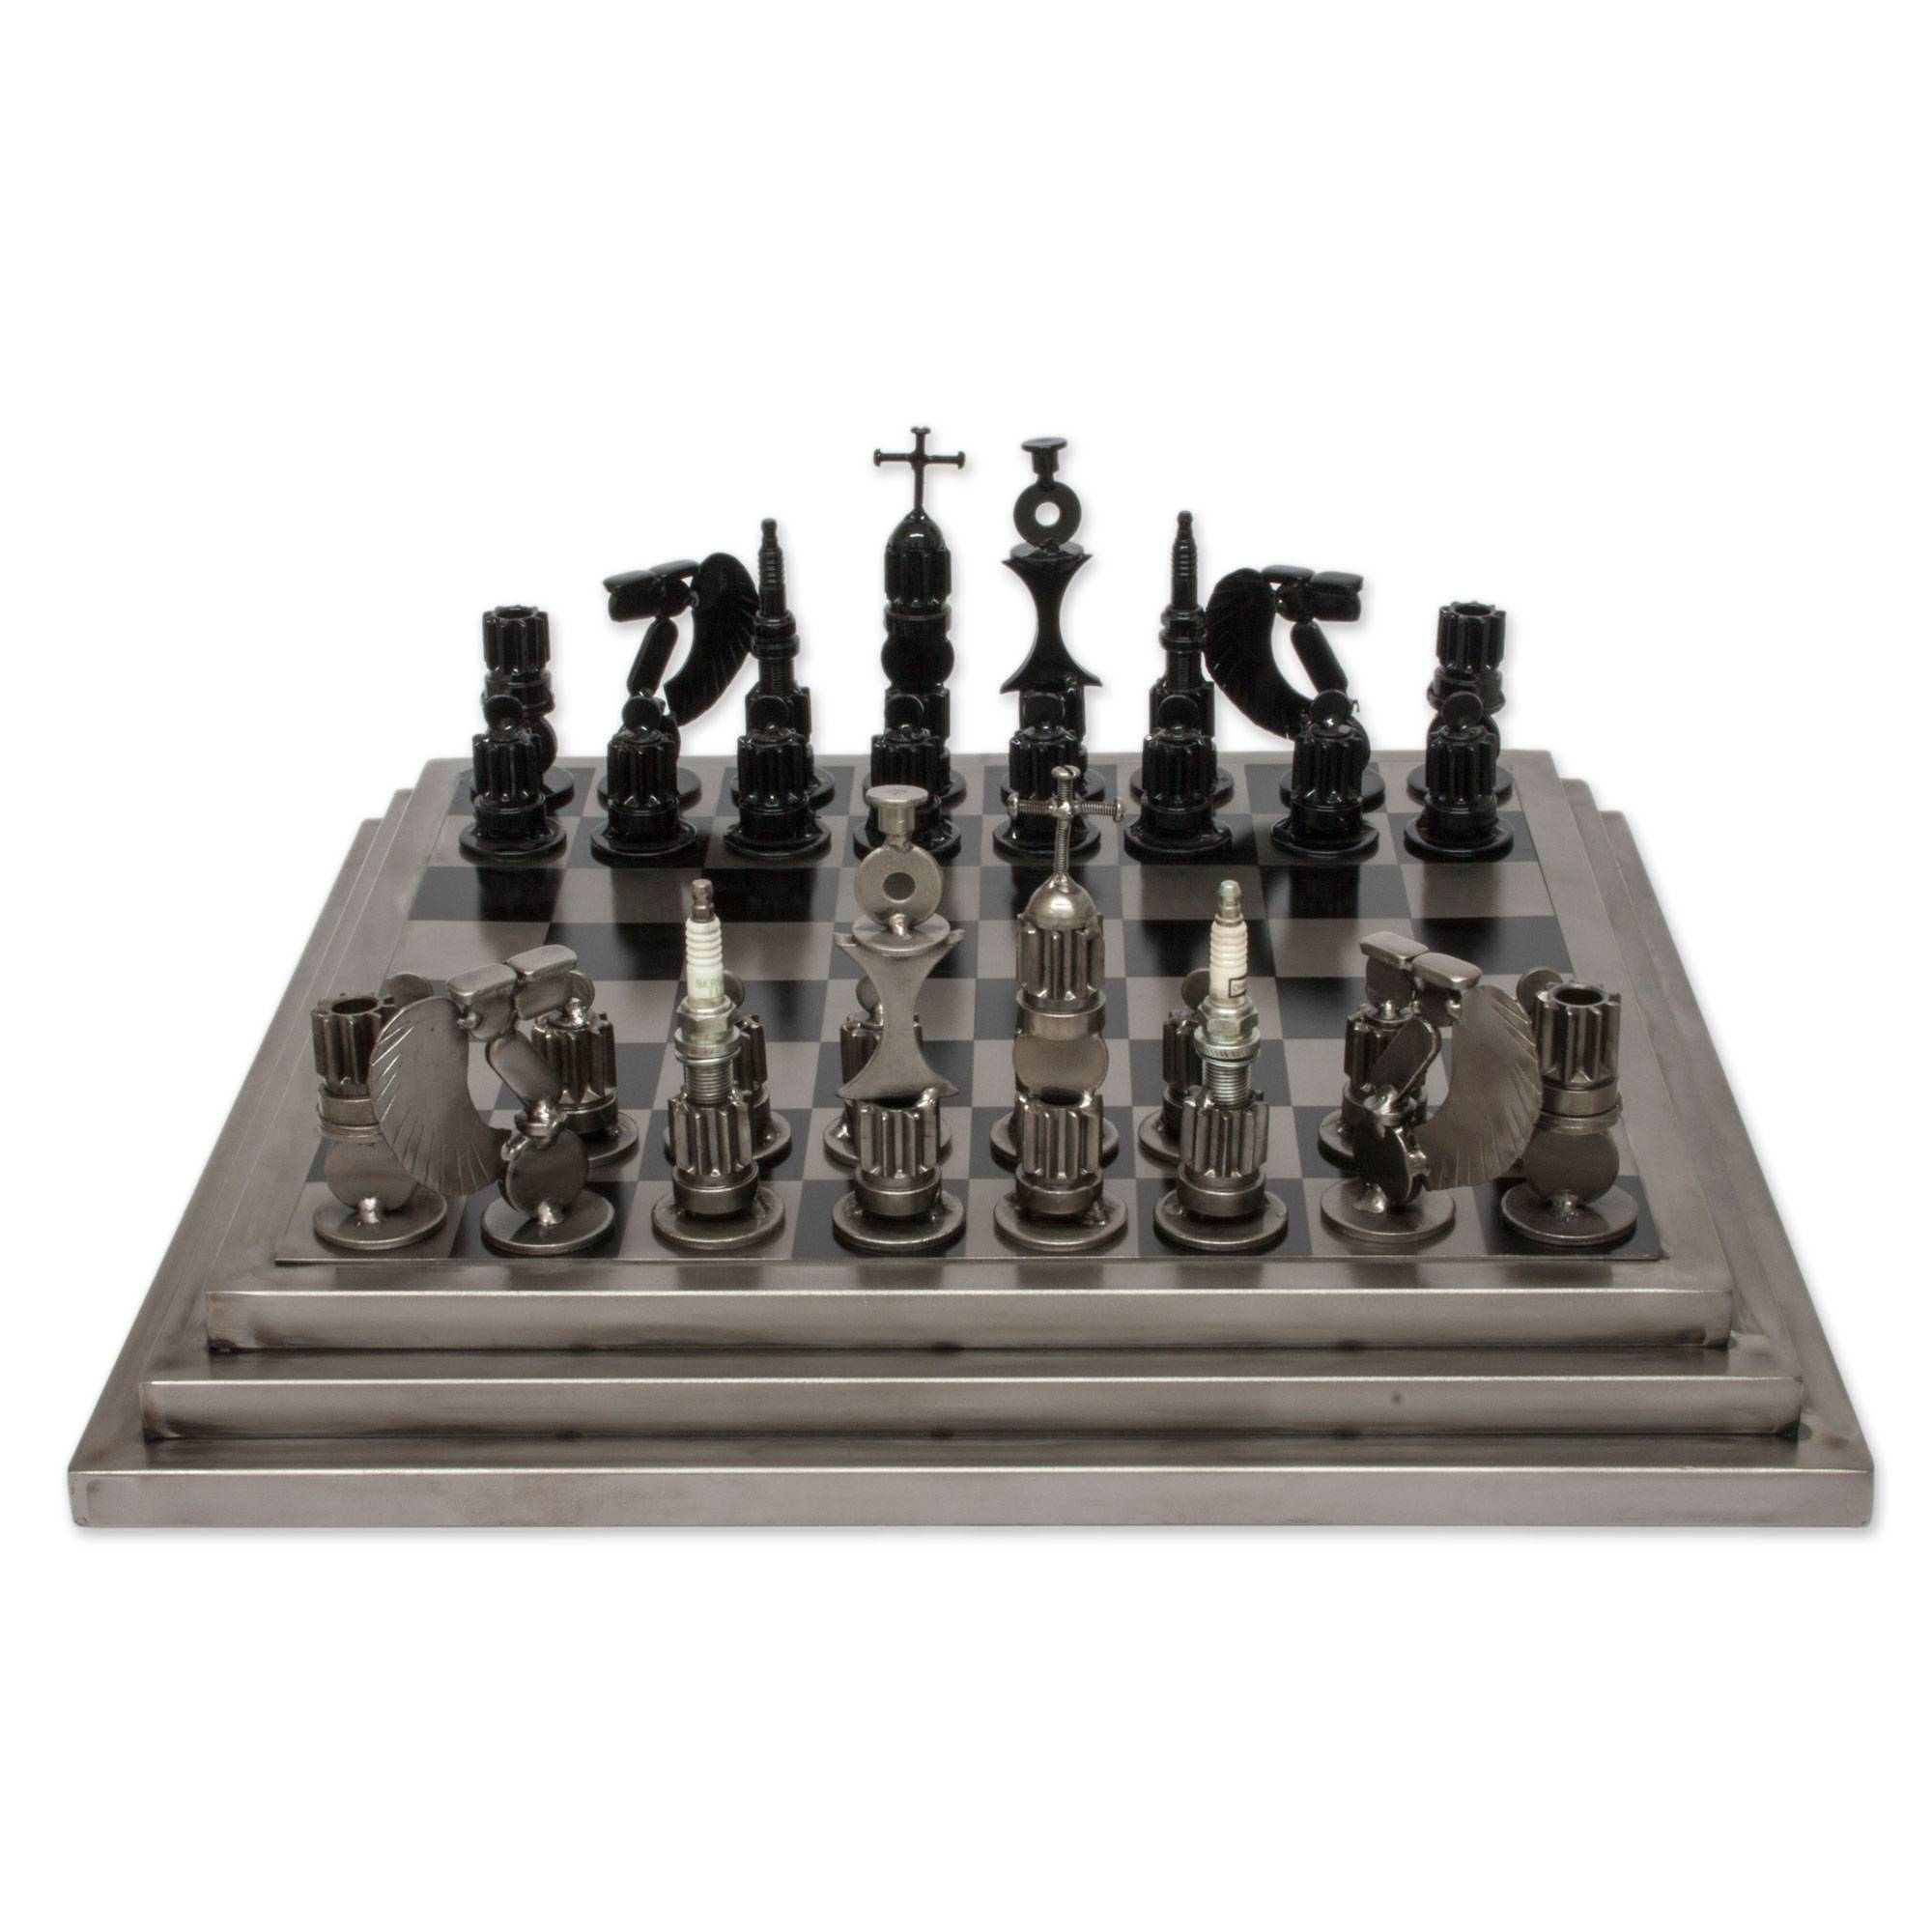 CHESS SETS & GAMES - Handcrafted Chess Sets at NOVICA